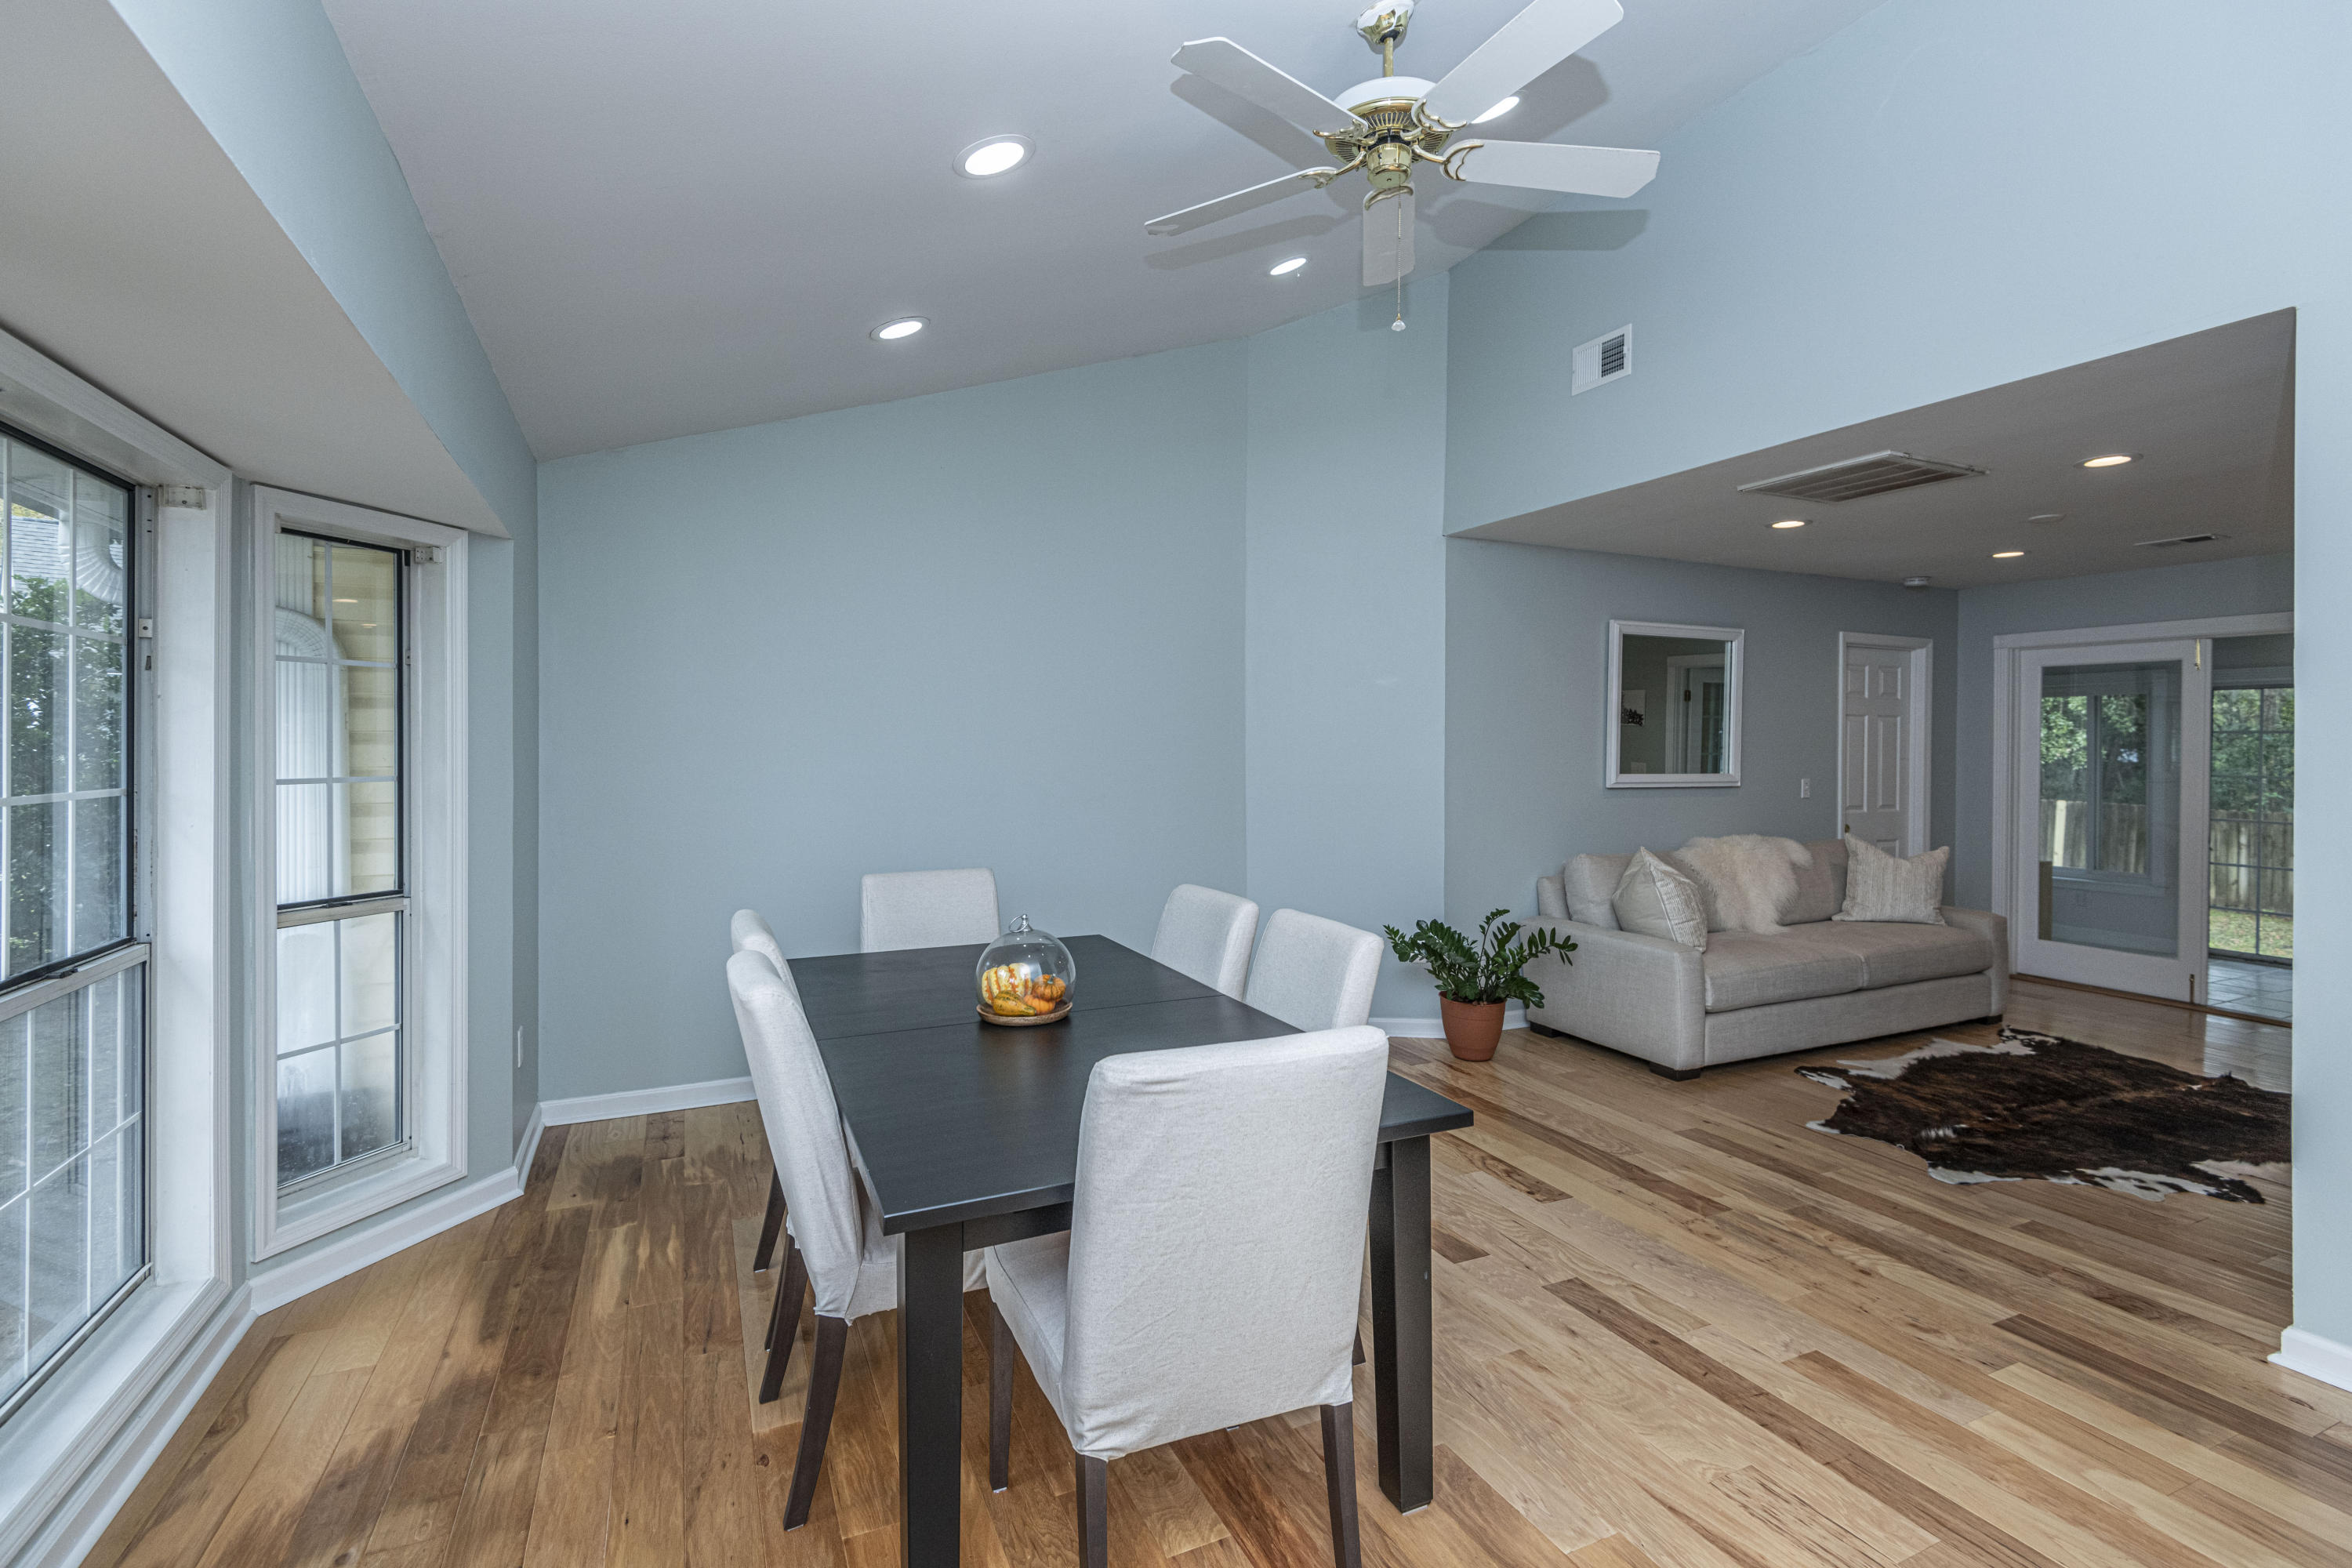 Coopers Pointe Homes For Sale - 1582 Hatteras Sound, Mount Pleasant, SC - 17